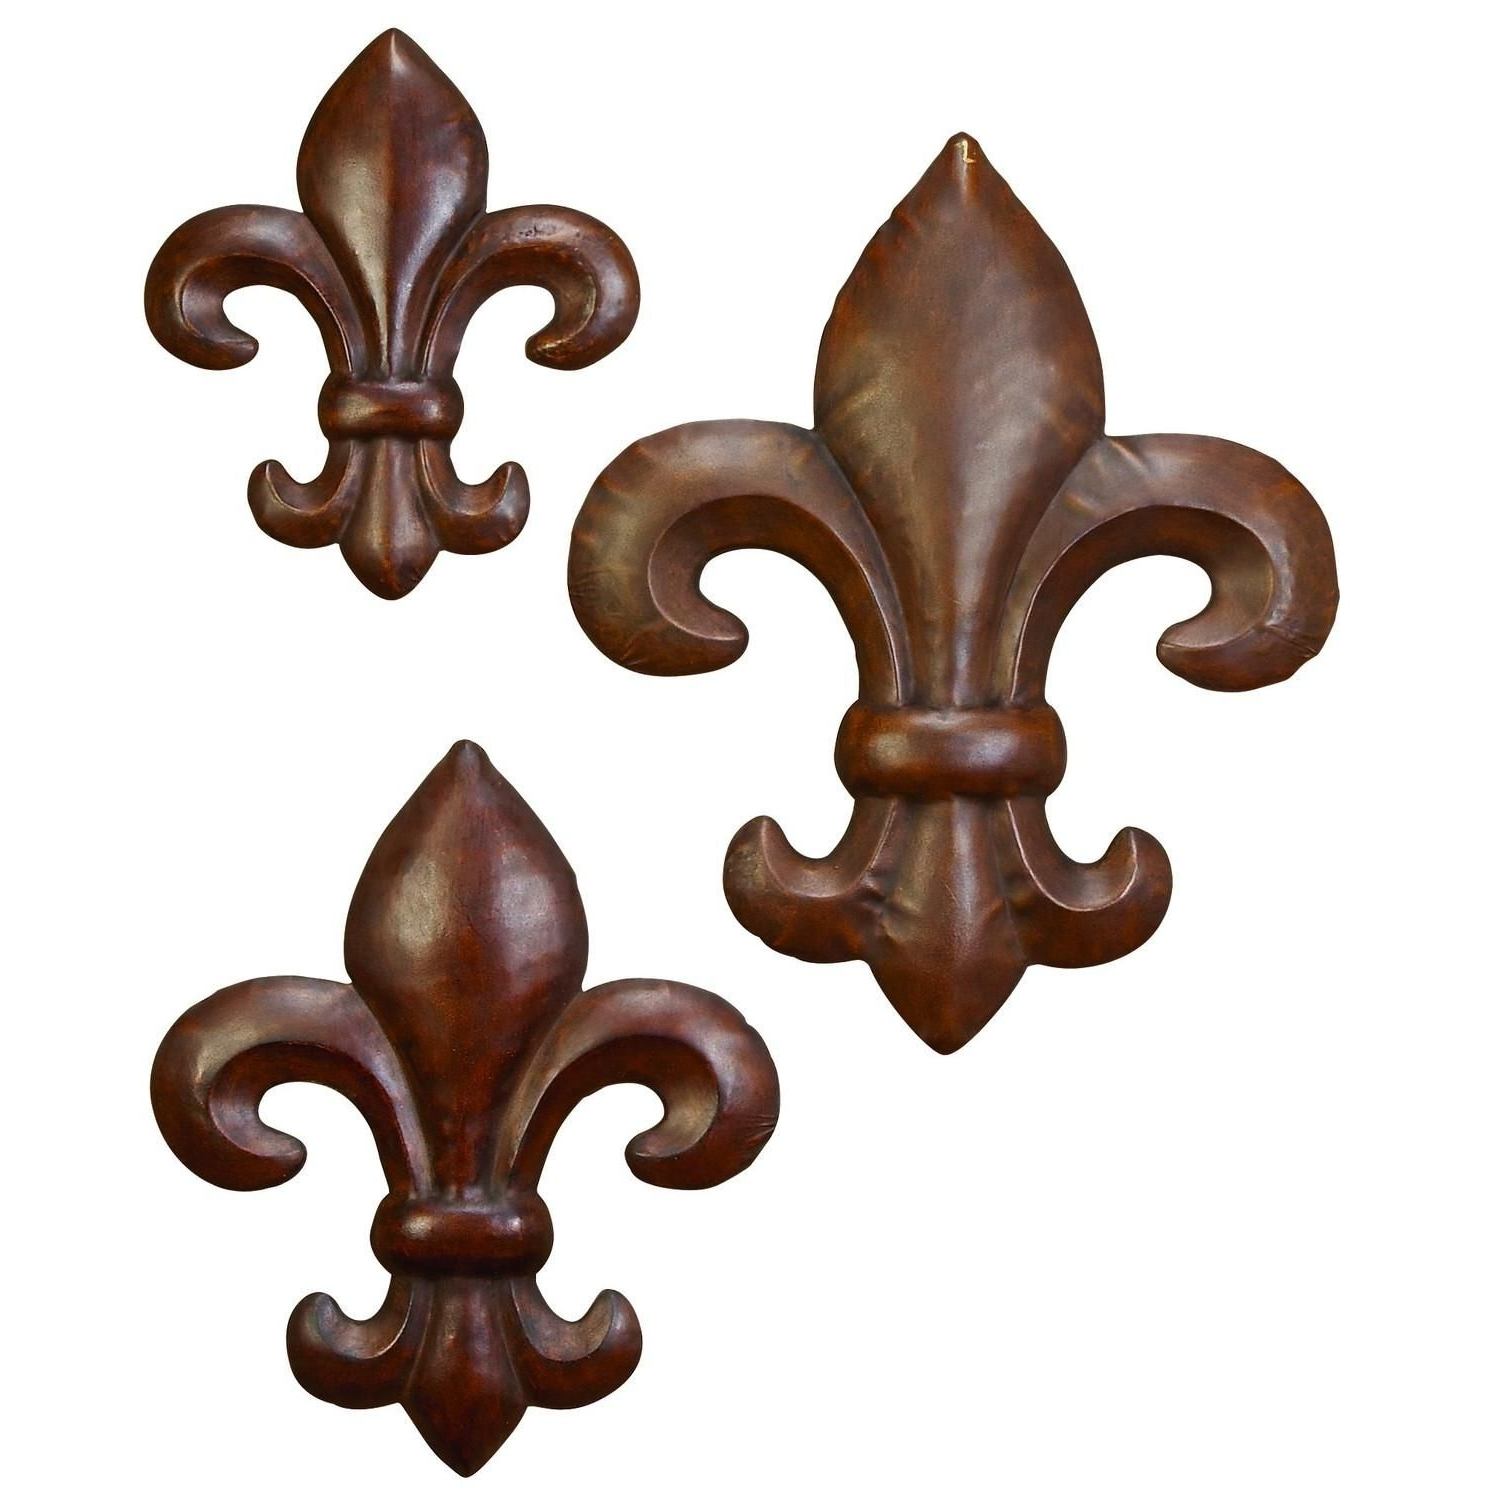 Favorite Amazing Fleur De Lis Wall Art Purplebirdcom For Decor Ideas And With Regard To Fleur De Lis Wall Art (View 9 of 20)